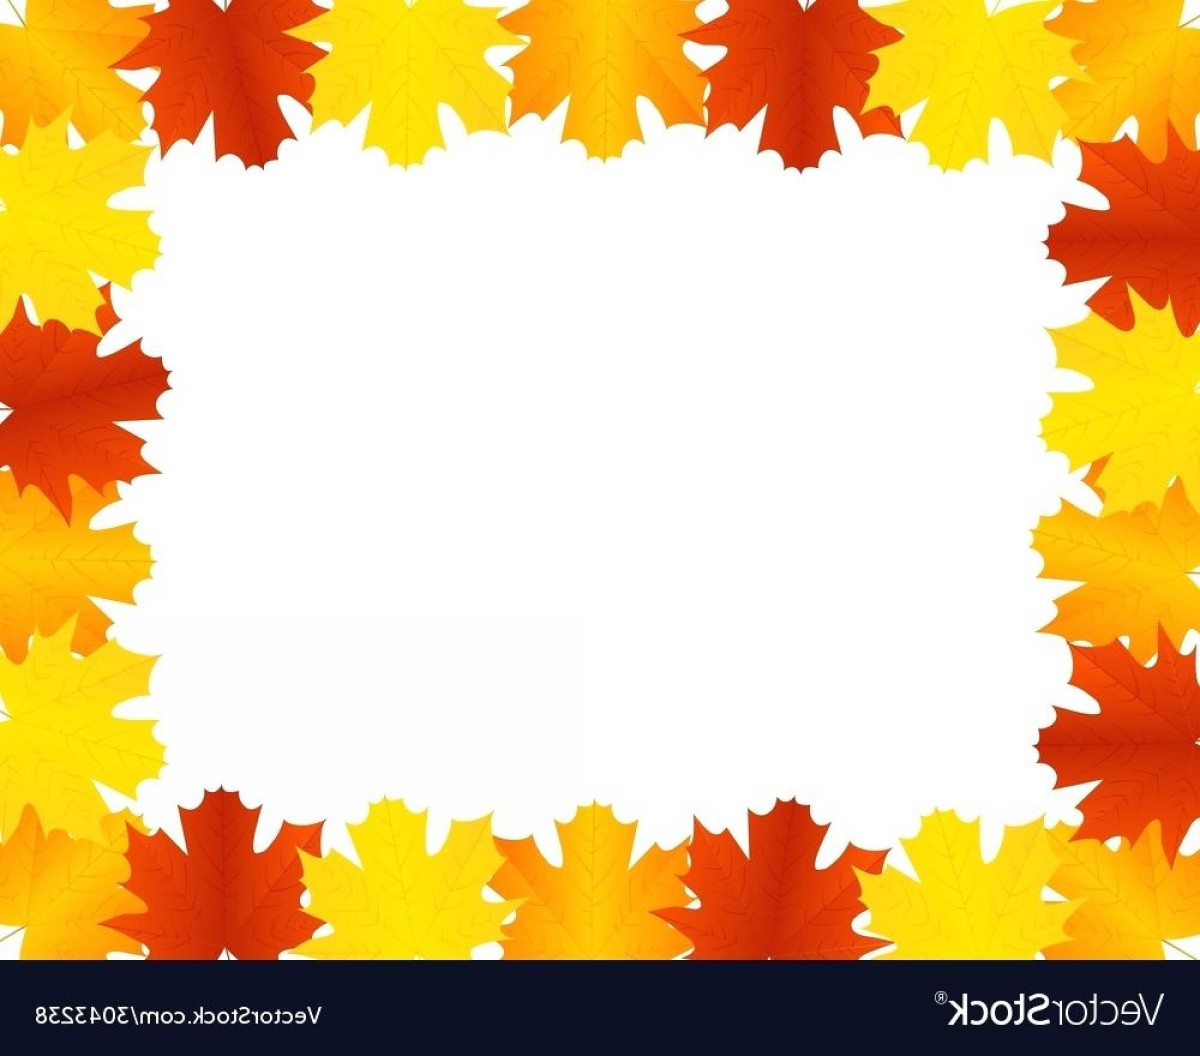 Thanksgiving Border Vector: Images Of Autumn Leaves Autumn Leaves Border Vector Image Images Of Autumn Leaves And Trees